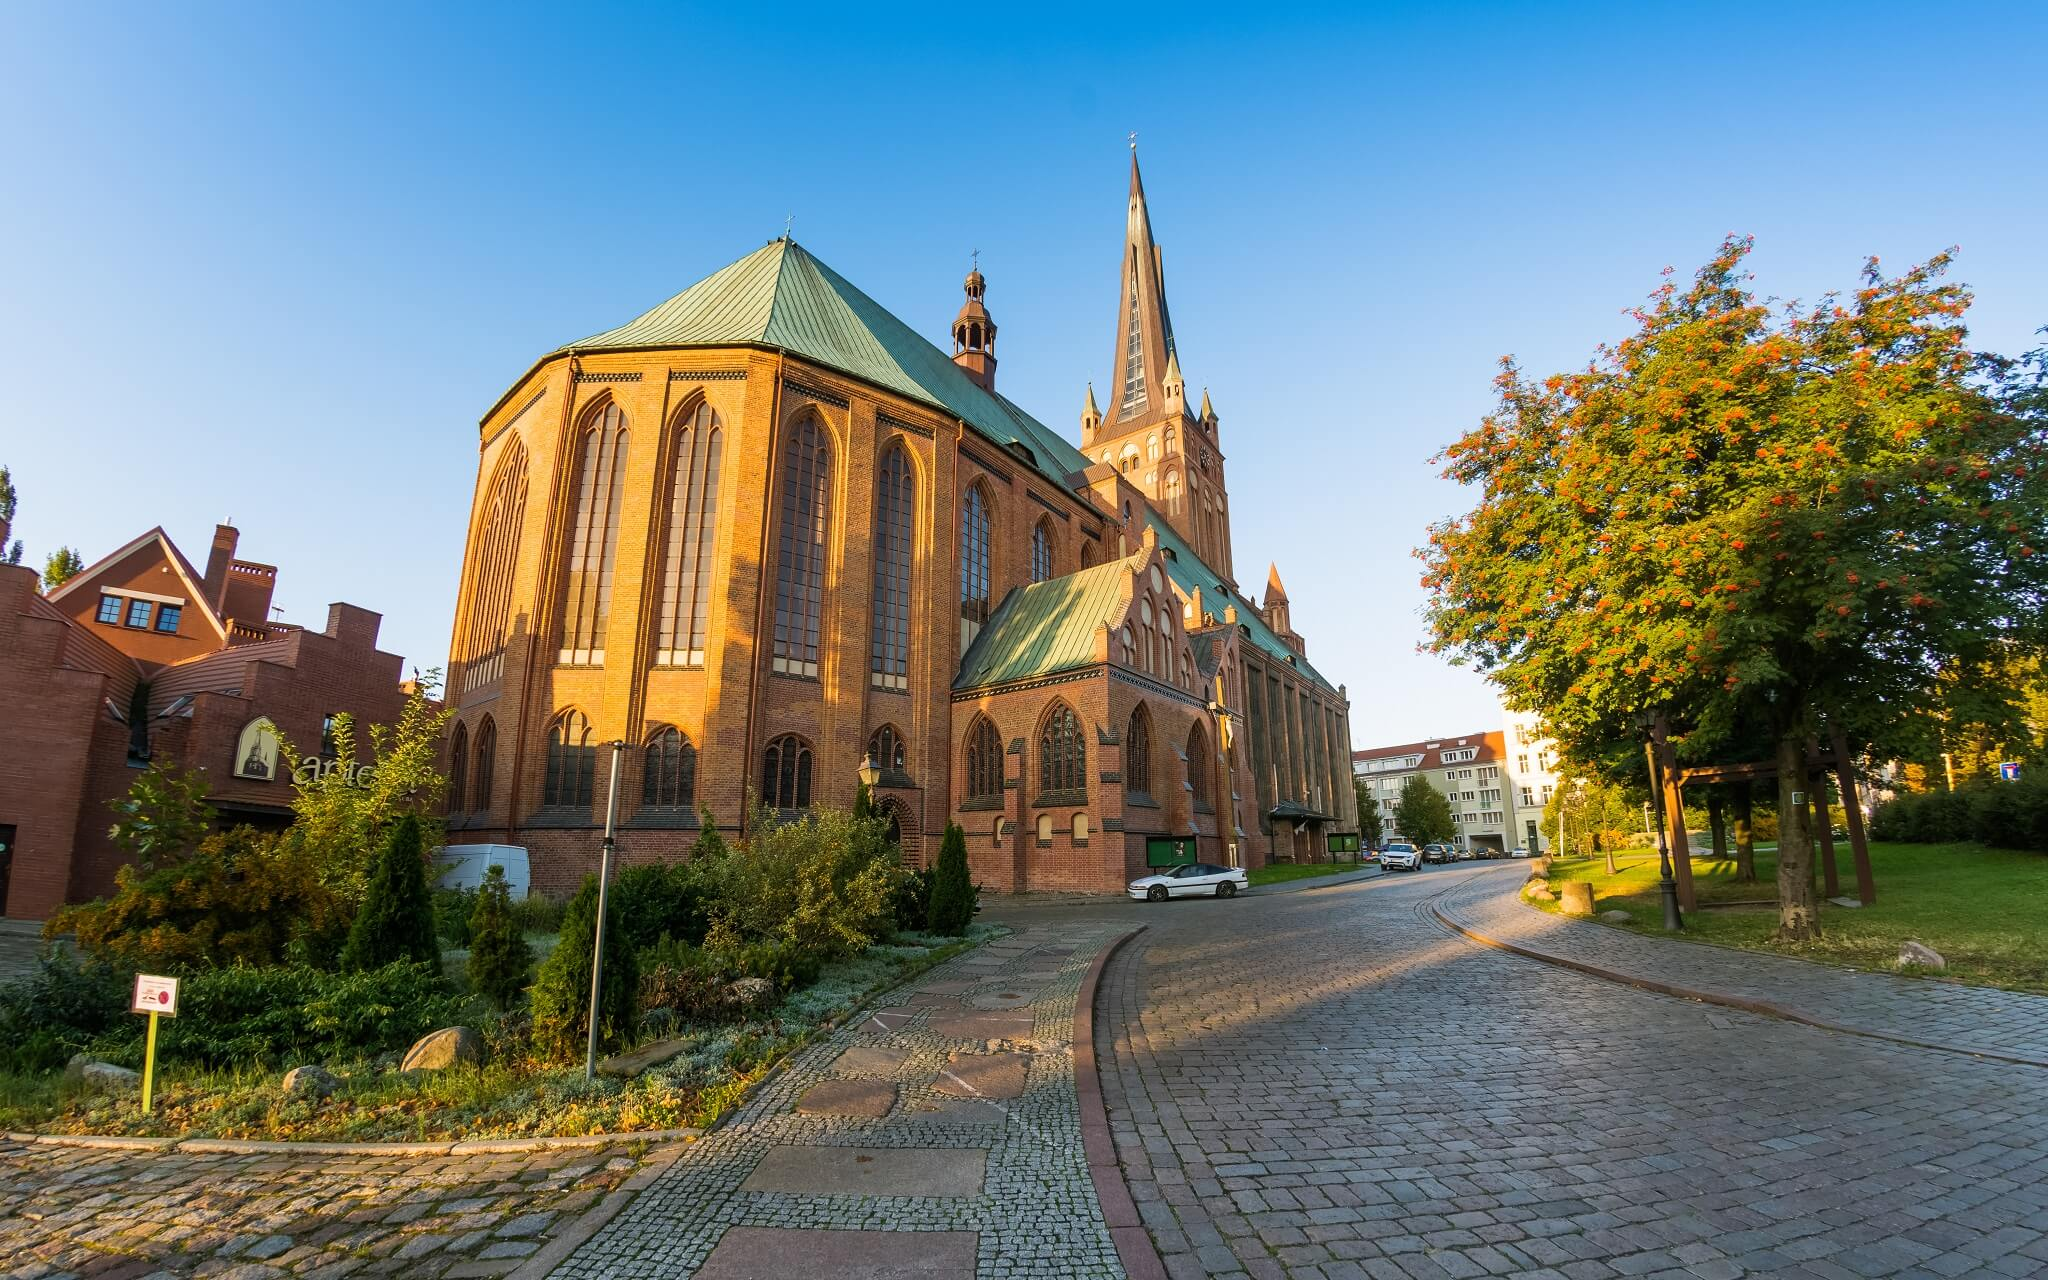 Jakobskathedrale (Church St. Jacob) in Stettin, Polen.